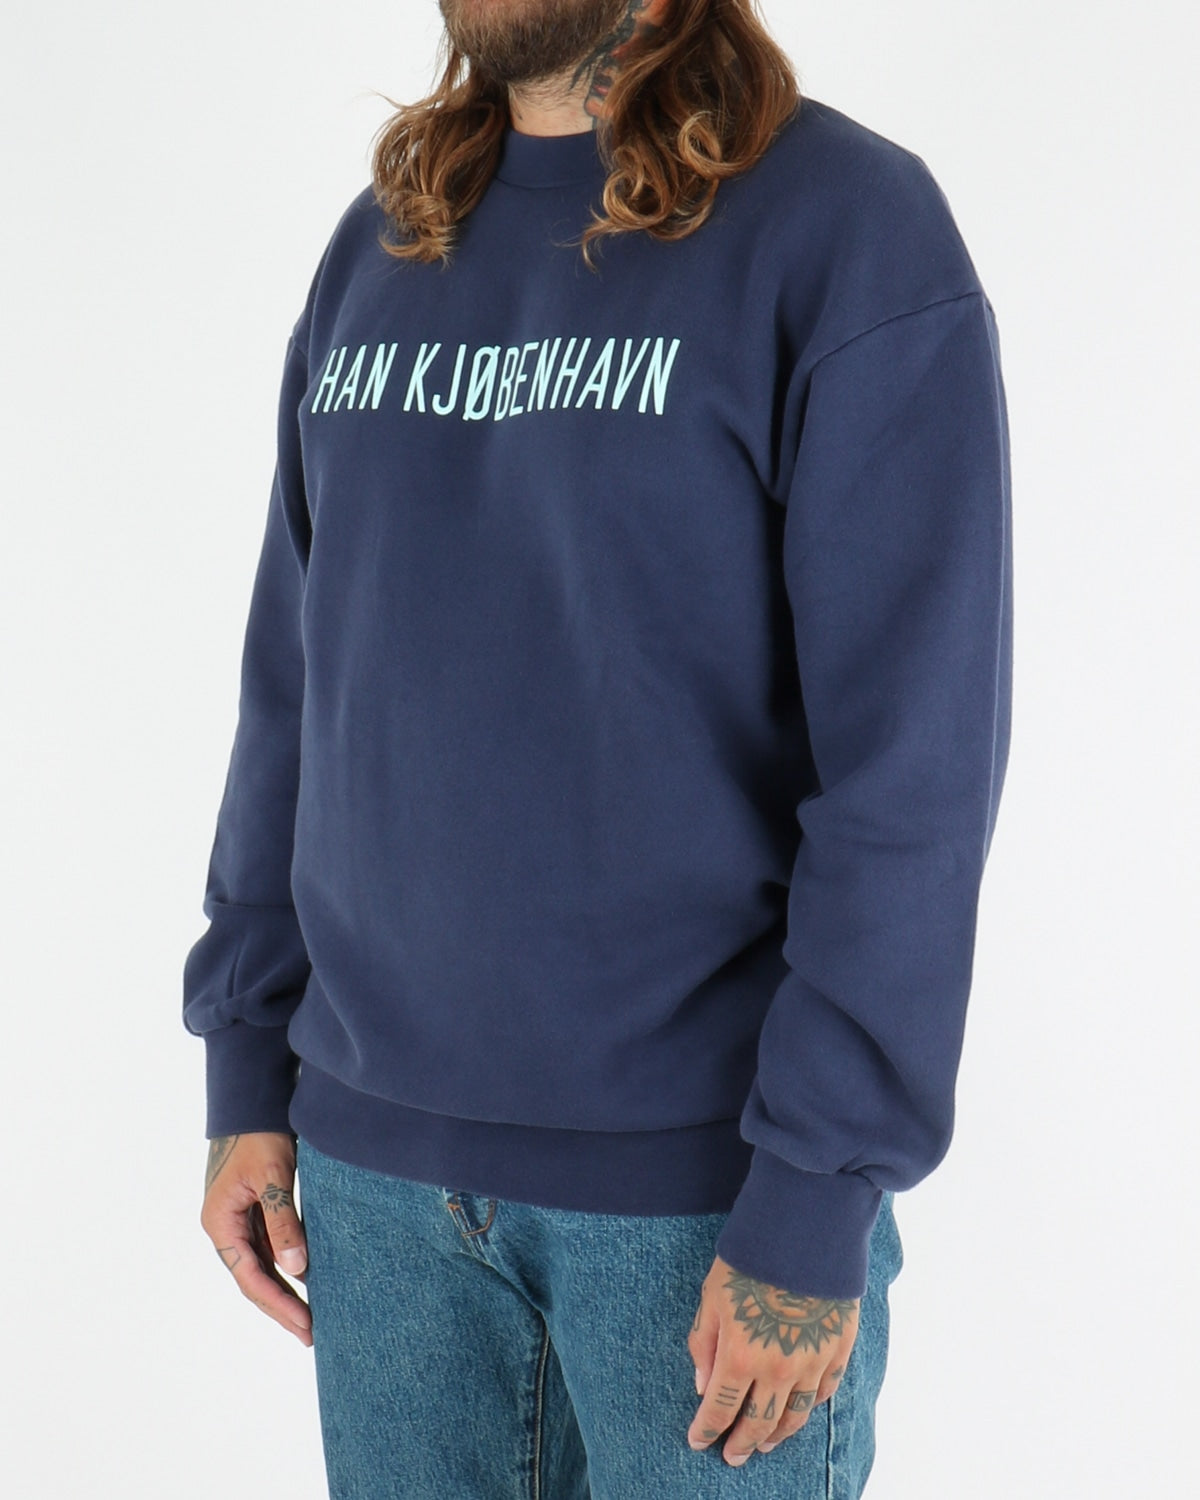 han kjobenhavn_casual crew neck_navy_view_3_3